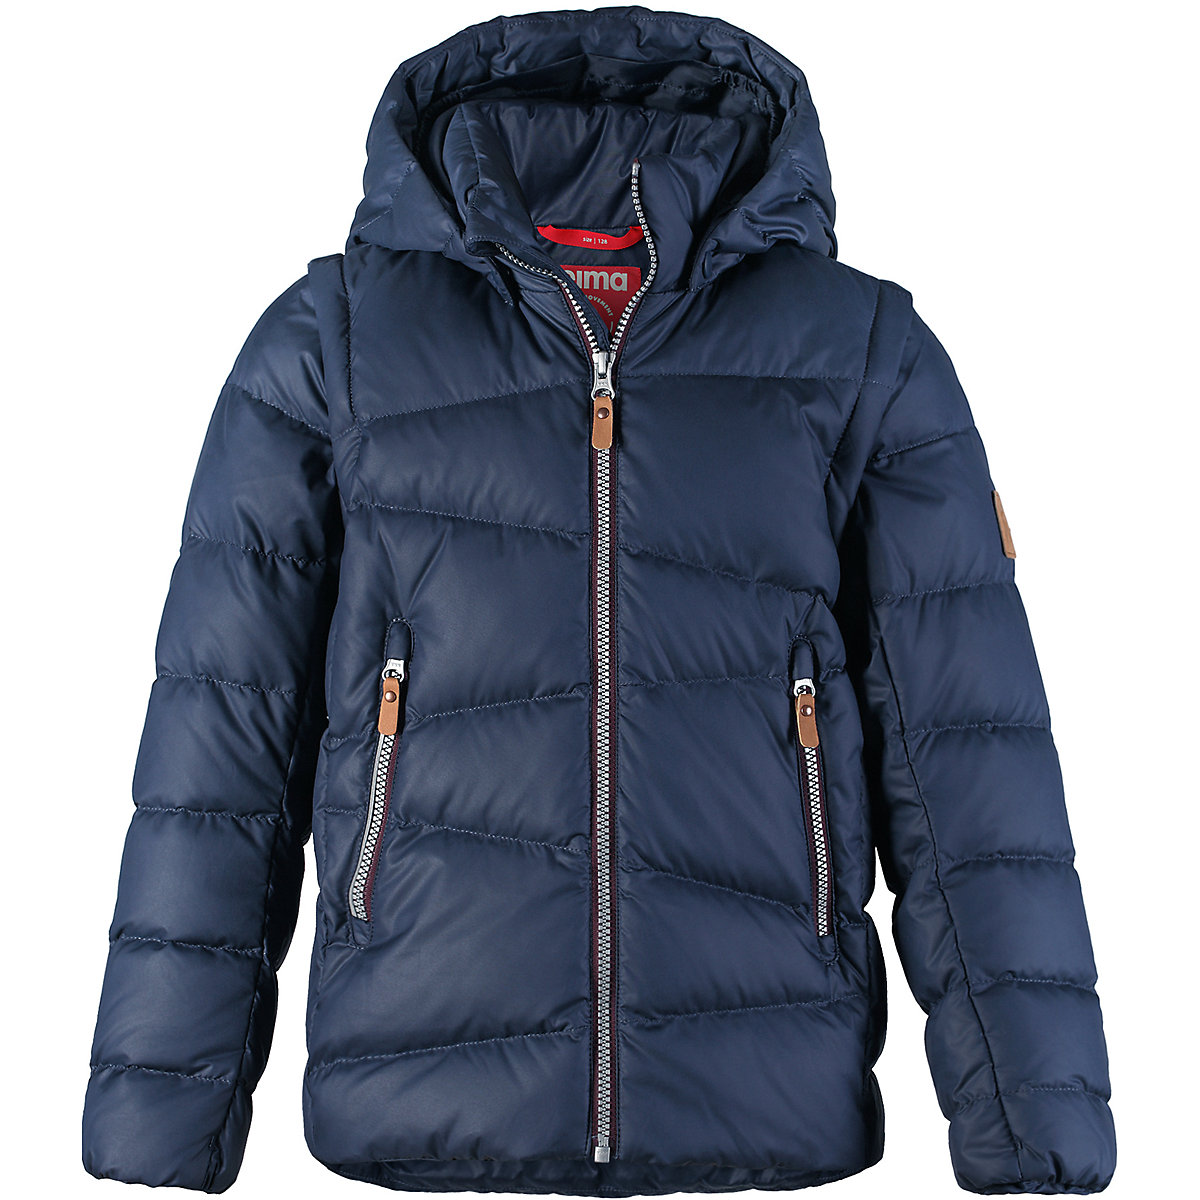 REIMA Jackets 8689636 for boys polyester winter  fur clothes boy brand orangemom winter boys baby clothes 0 24m infant costume for a boy coat jackets soft high quality outerwear